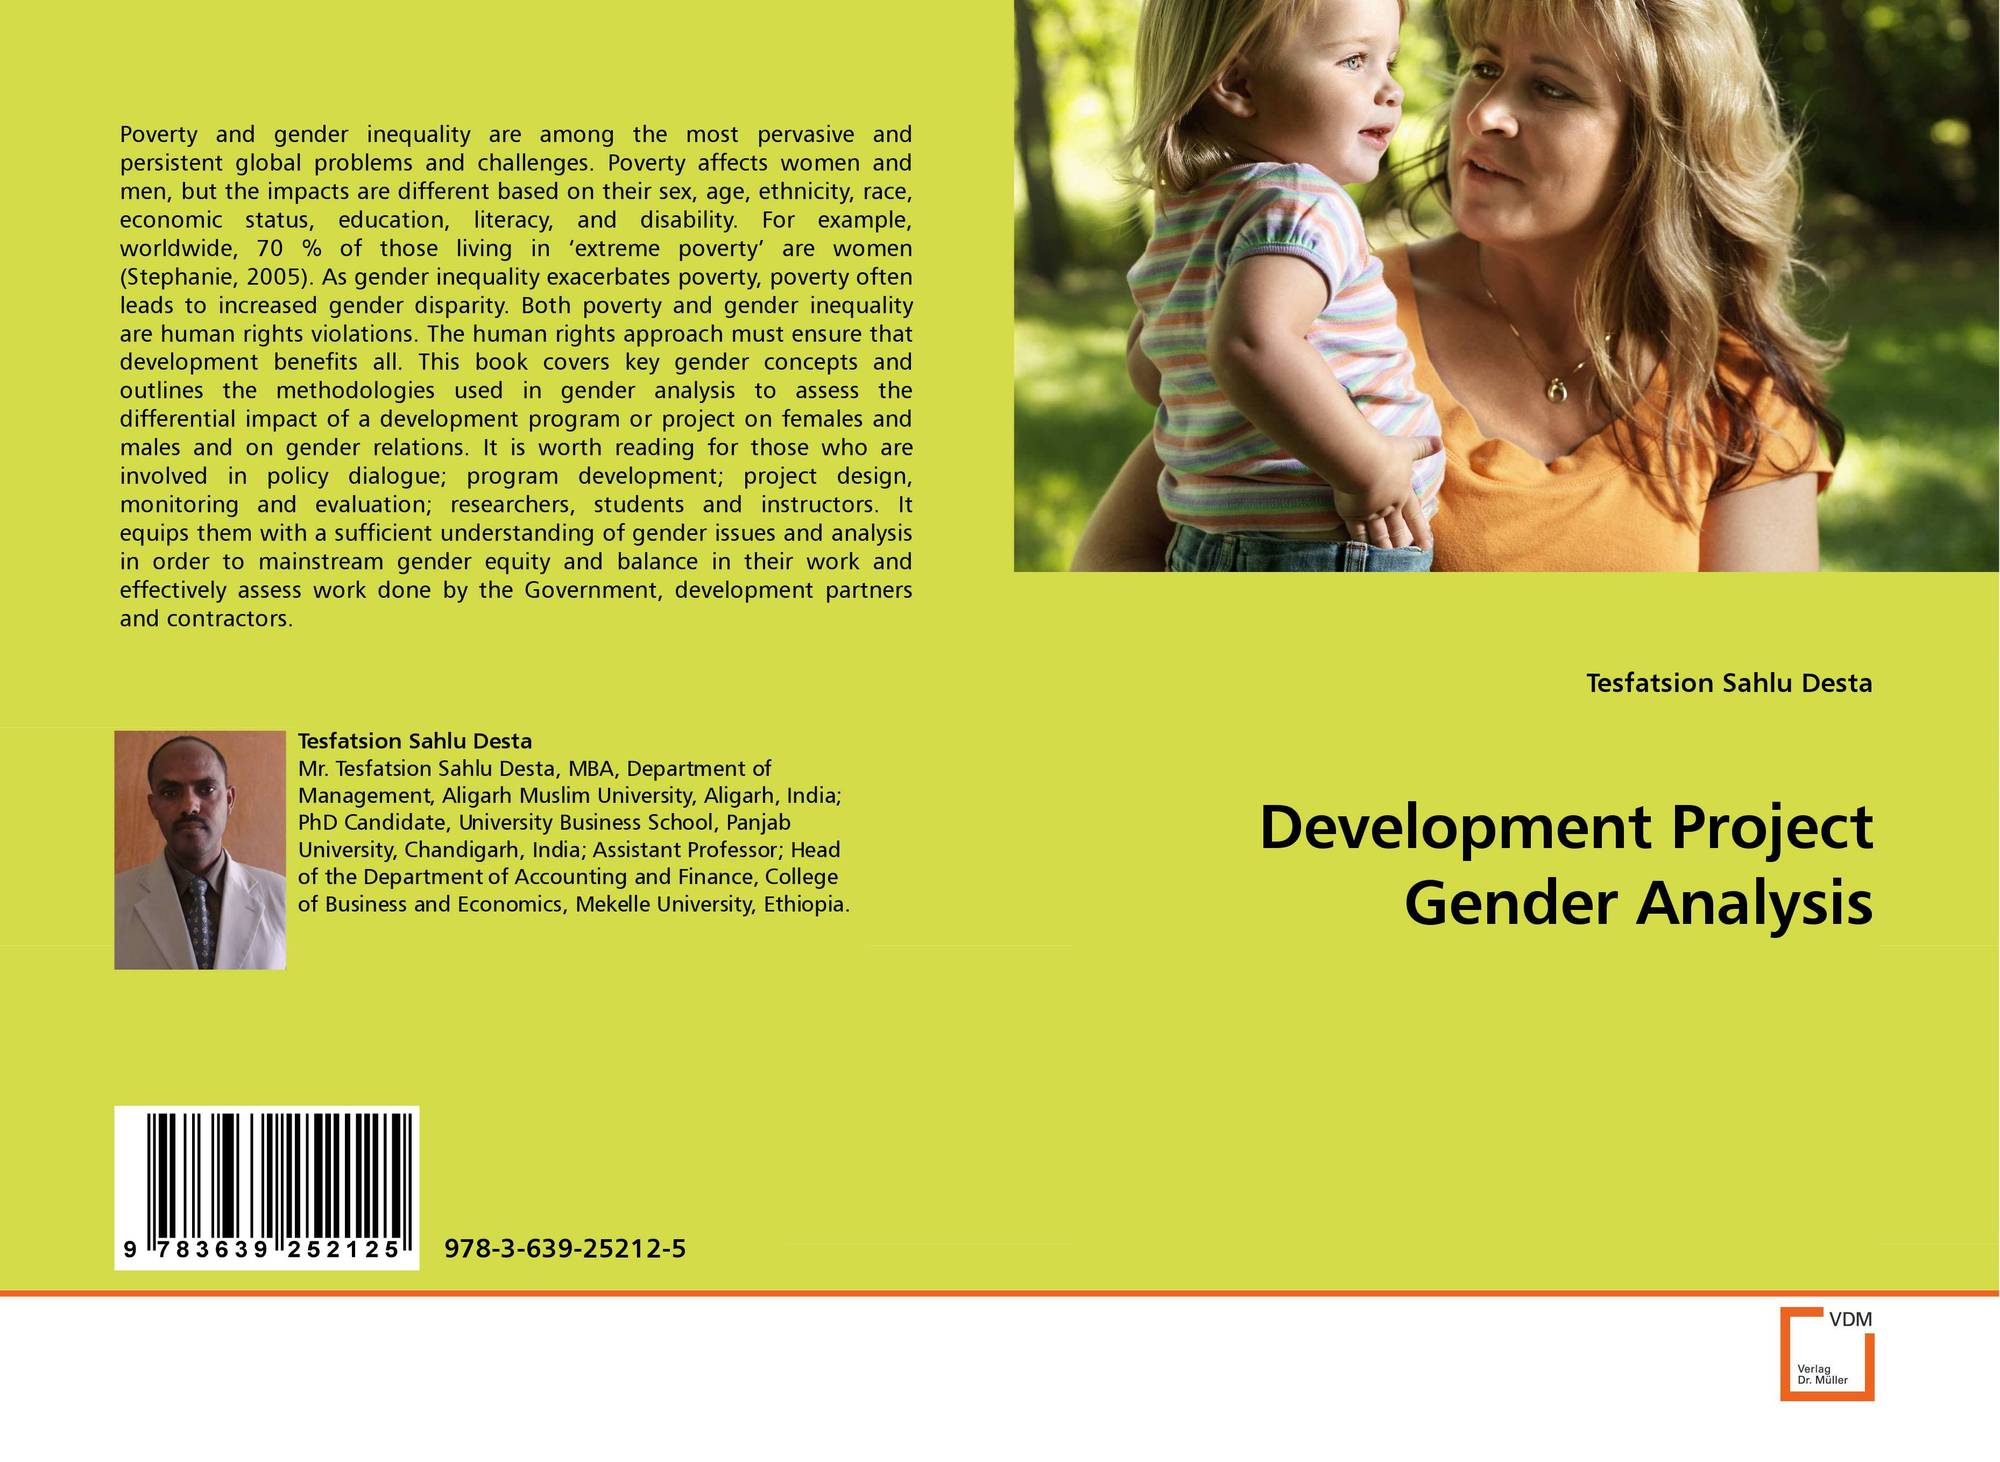 research and analysis on gender inequality